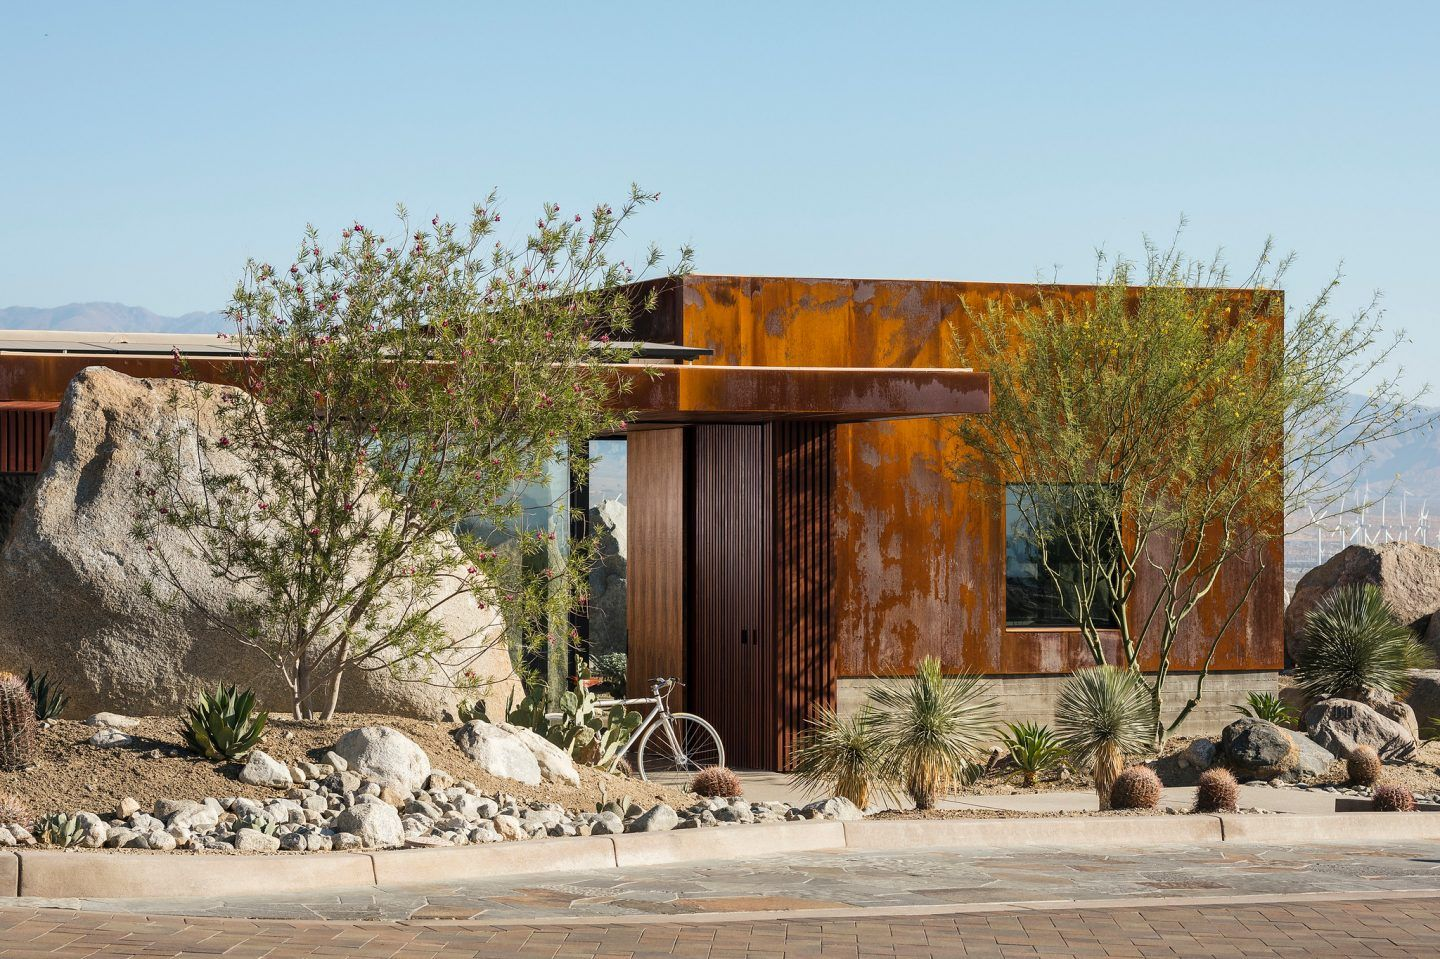 ignant-architecture-sean-lockyer-desert-palisades-004